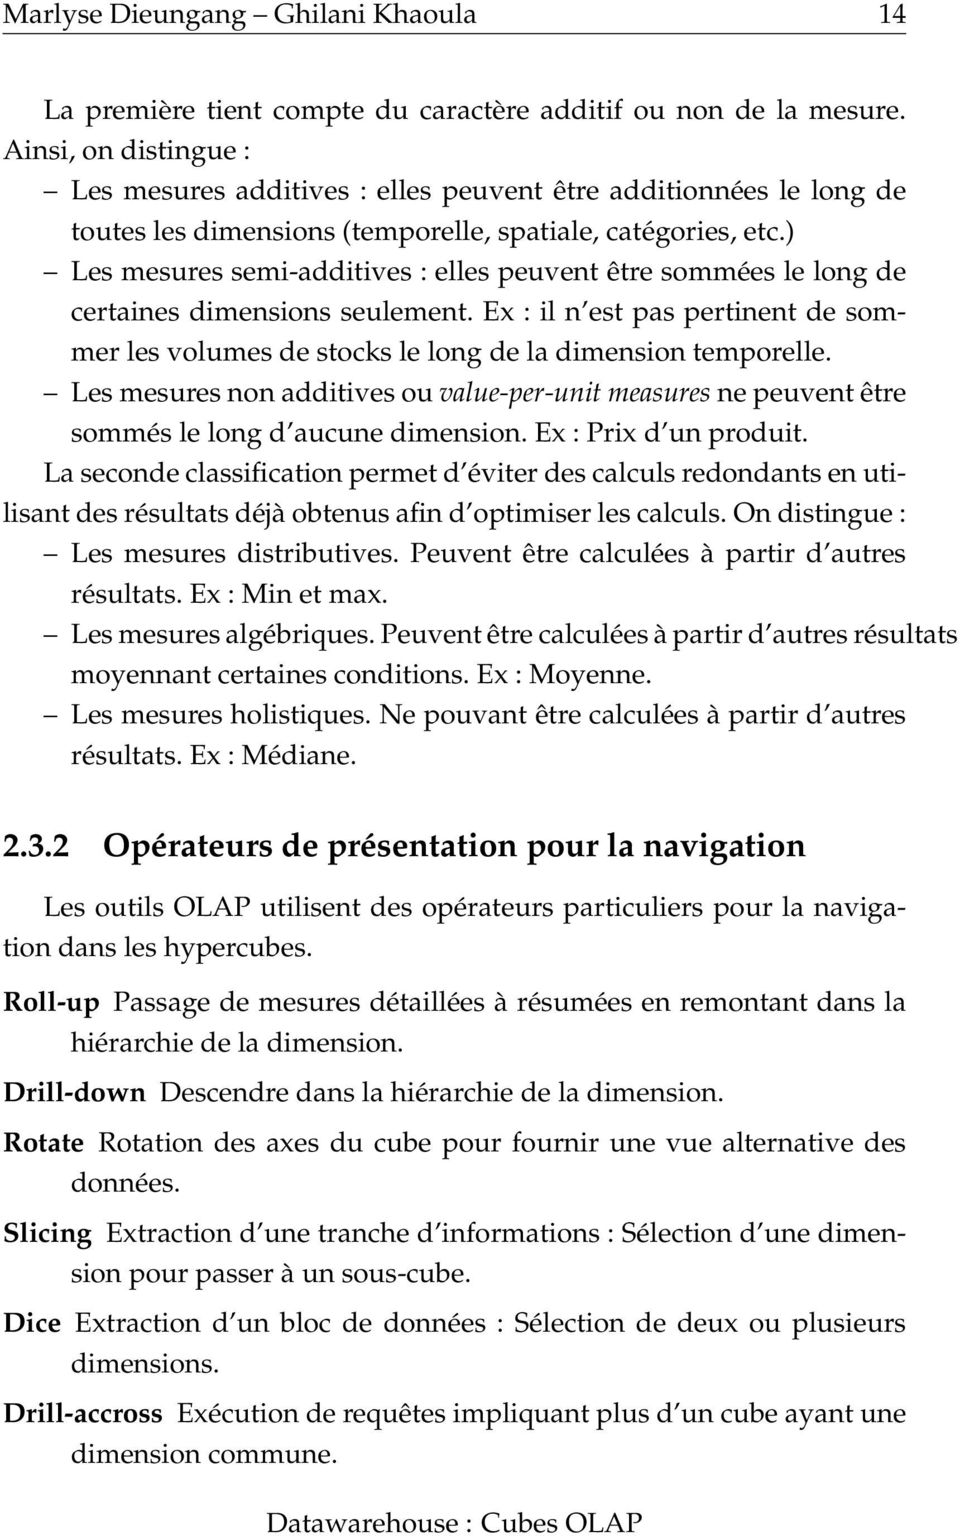 ) Les mesures semi-additives : elles peuvent être sommées le long de certaines dimensions seulement. Ex : il n est pas pertinent de sommer les volumes de stocks le long de la dimension temporelle.